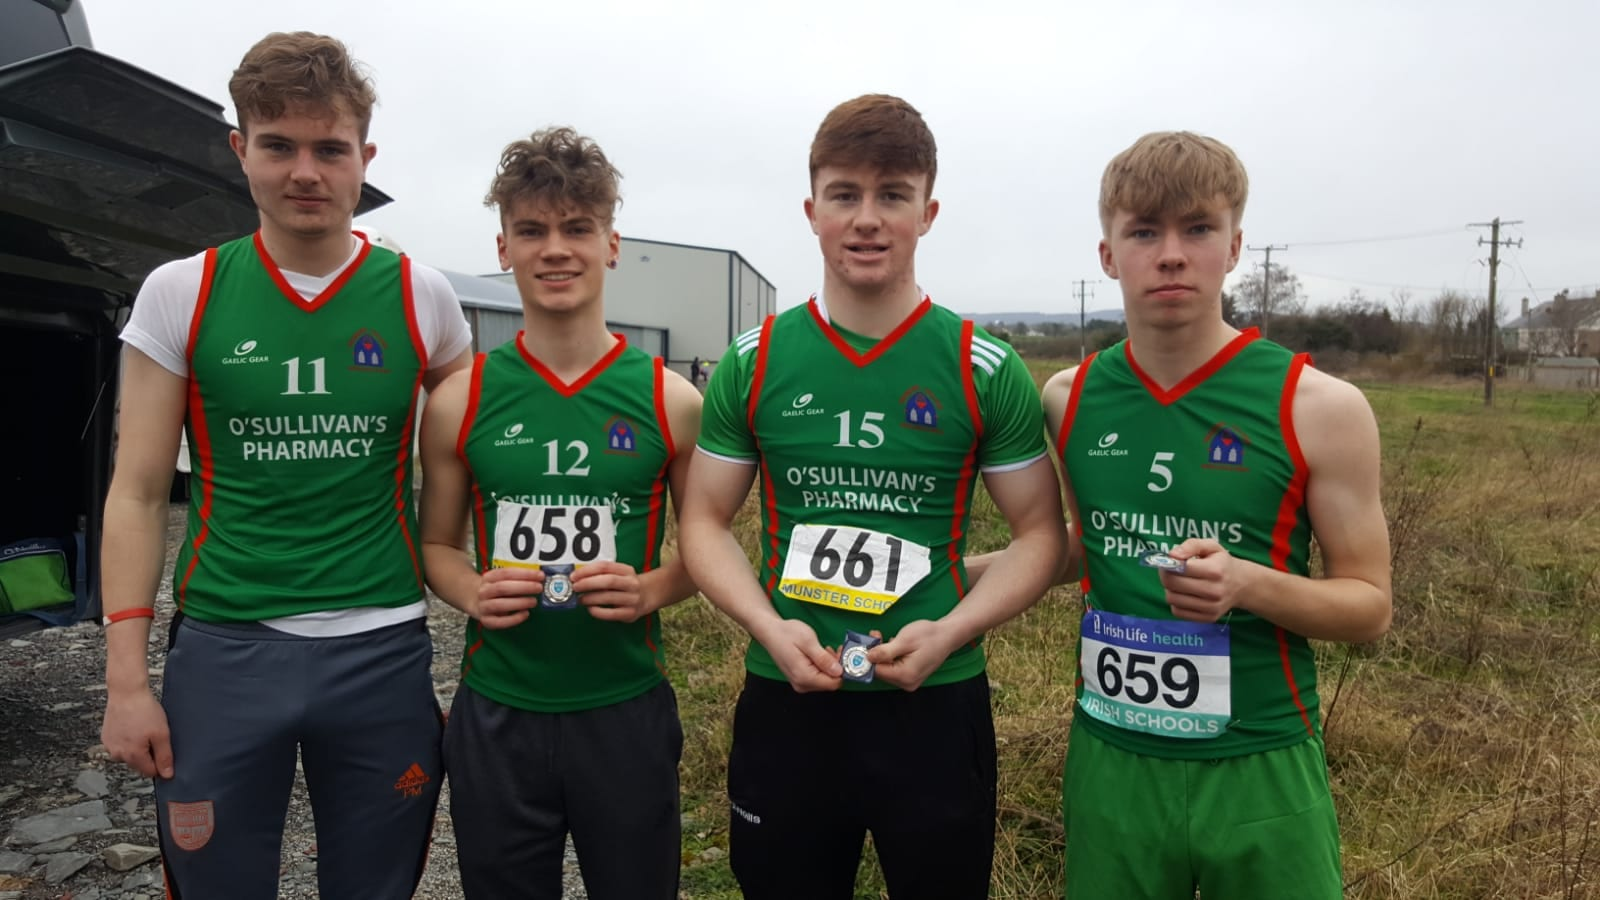 Danny Moriarty, Nathan Wright, Jack Corkery and Dylan O'Shea at the Munster Athletic School Games 2019